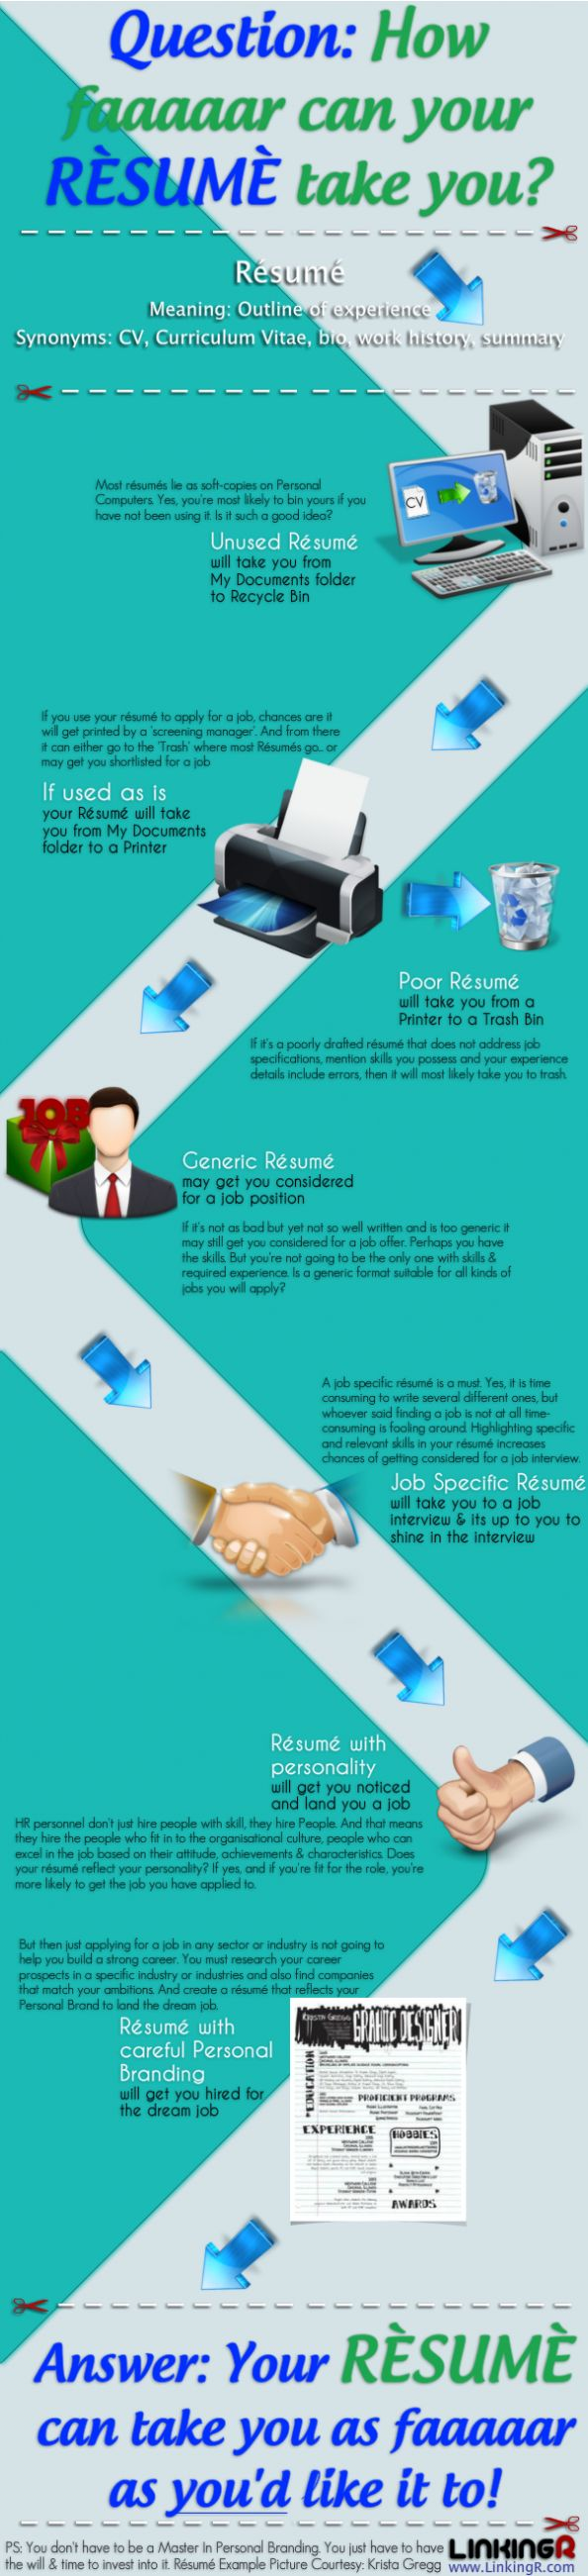 best images about curriculum vitae resume resume career job related career jobs career help career services resume infographics cv resumes design infographic resume cv based resumes